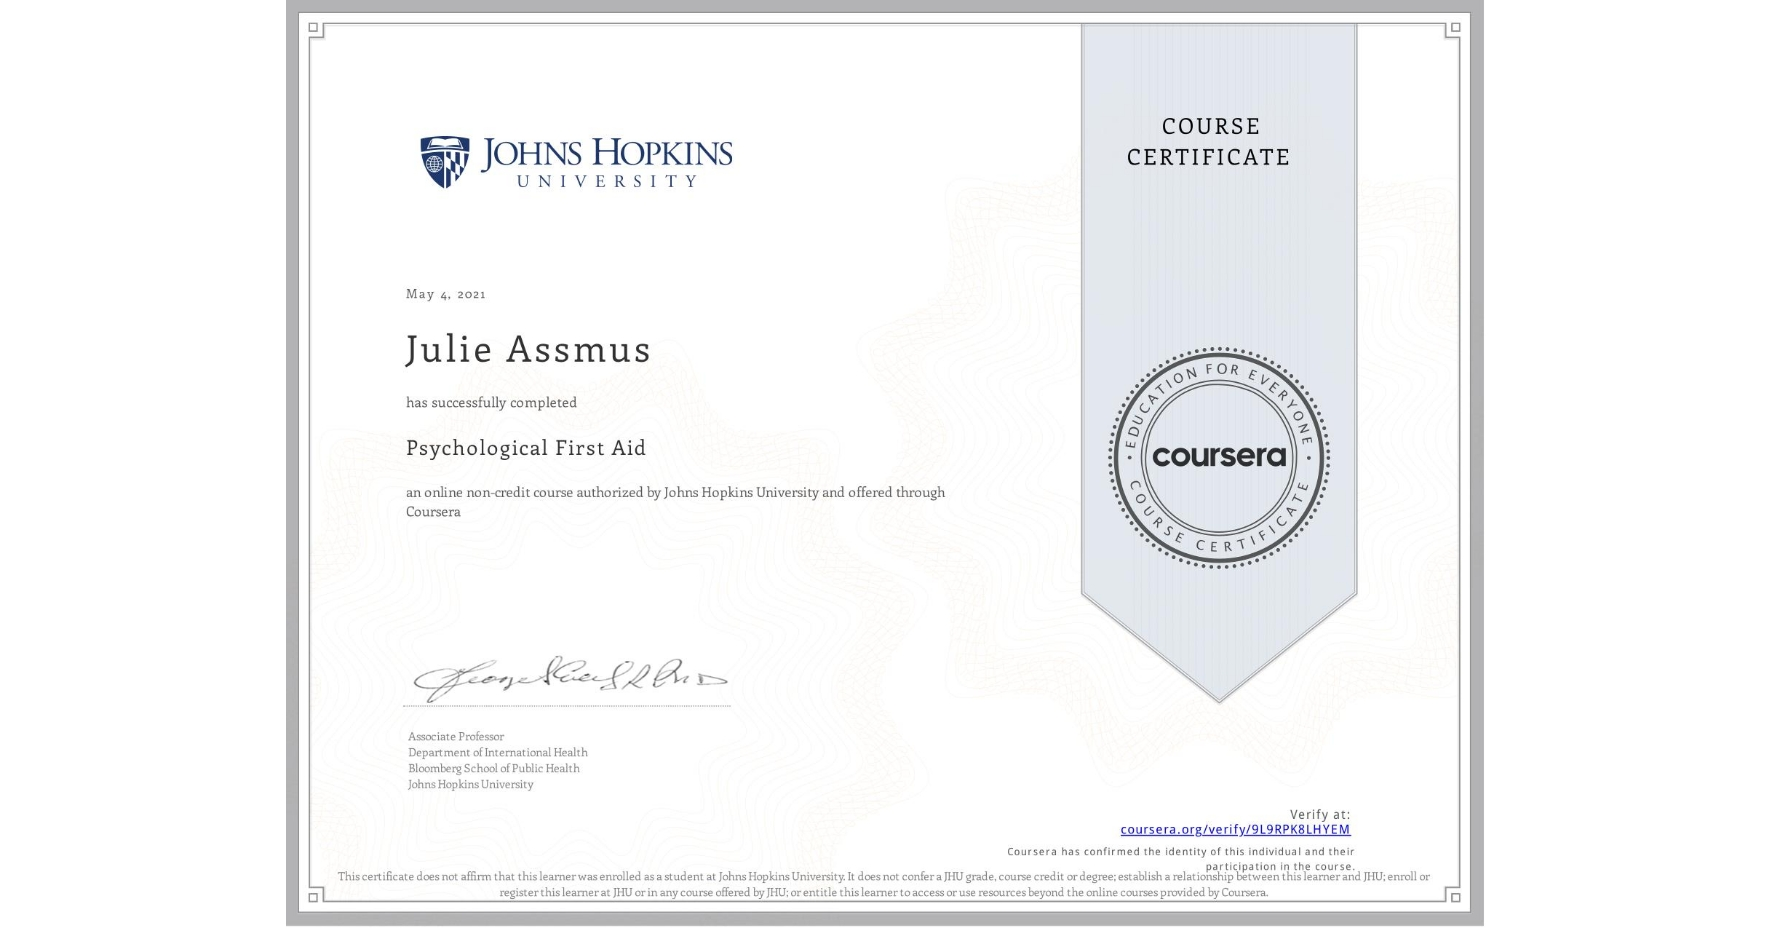 View certificate for Julie Assmus, Psychological First Aid, an online non-credit course authorized by Johns Hopkins University and offered through Coursera